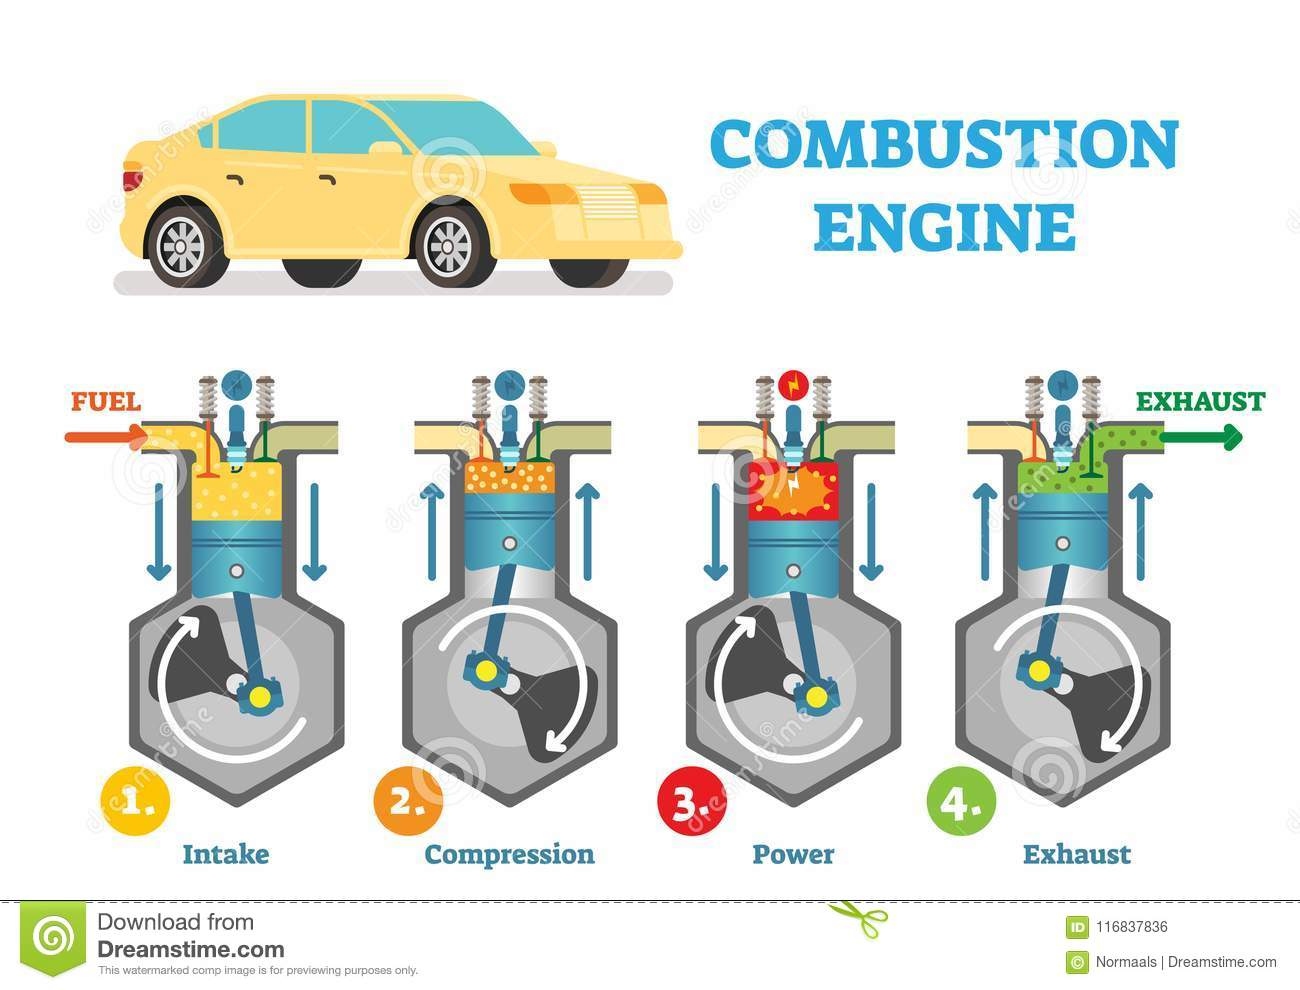 combustion engine technical vector illustration diagram with fuel BMW E39 Engine Diagram combustion engine technical vector illustration diagram with fuel intake, compression, explosion and exhaust stages in cylinder